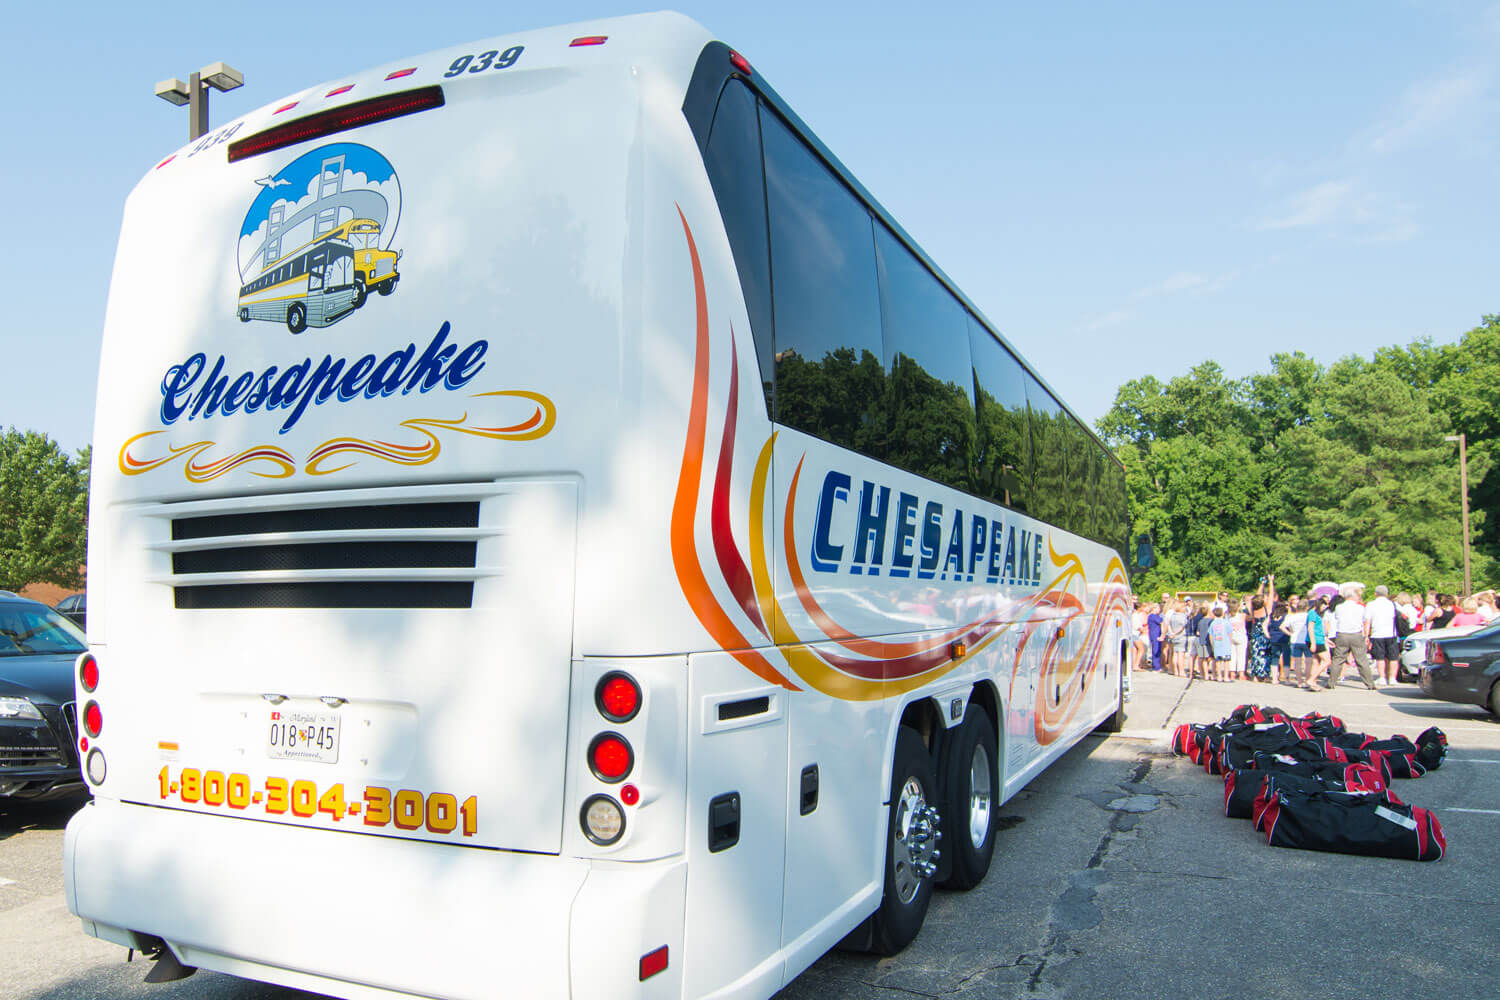 charter a bus chesapeake